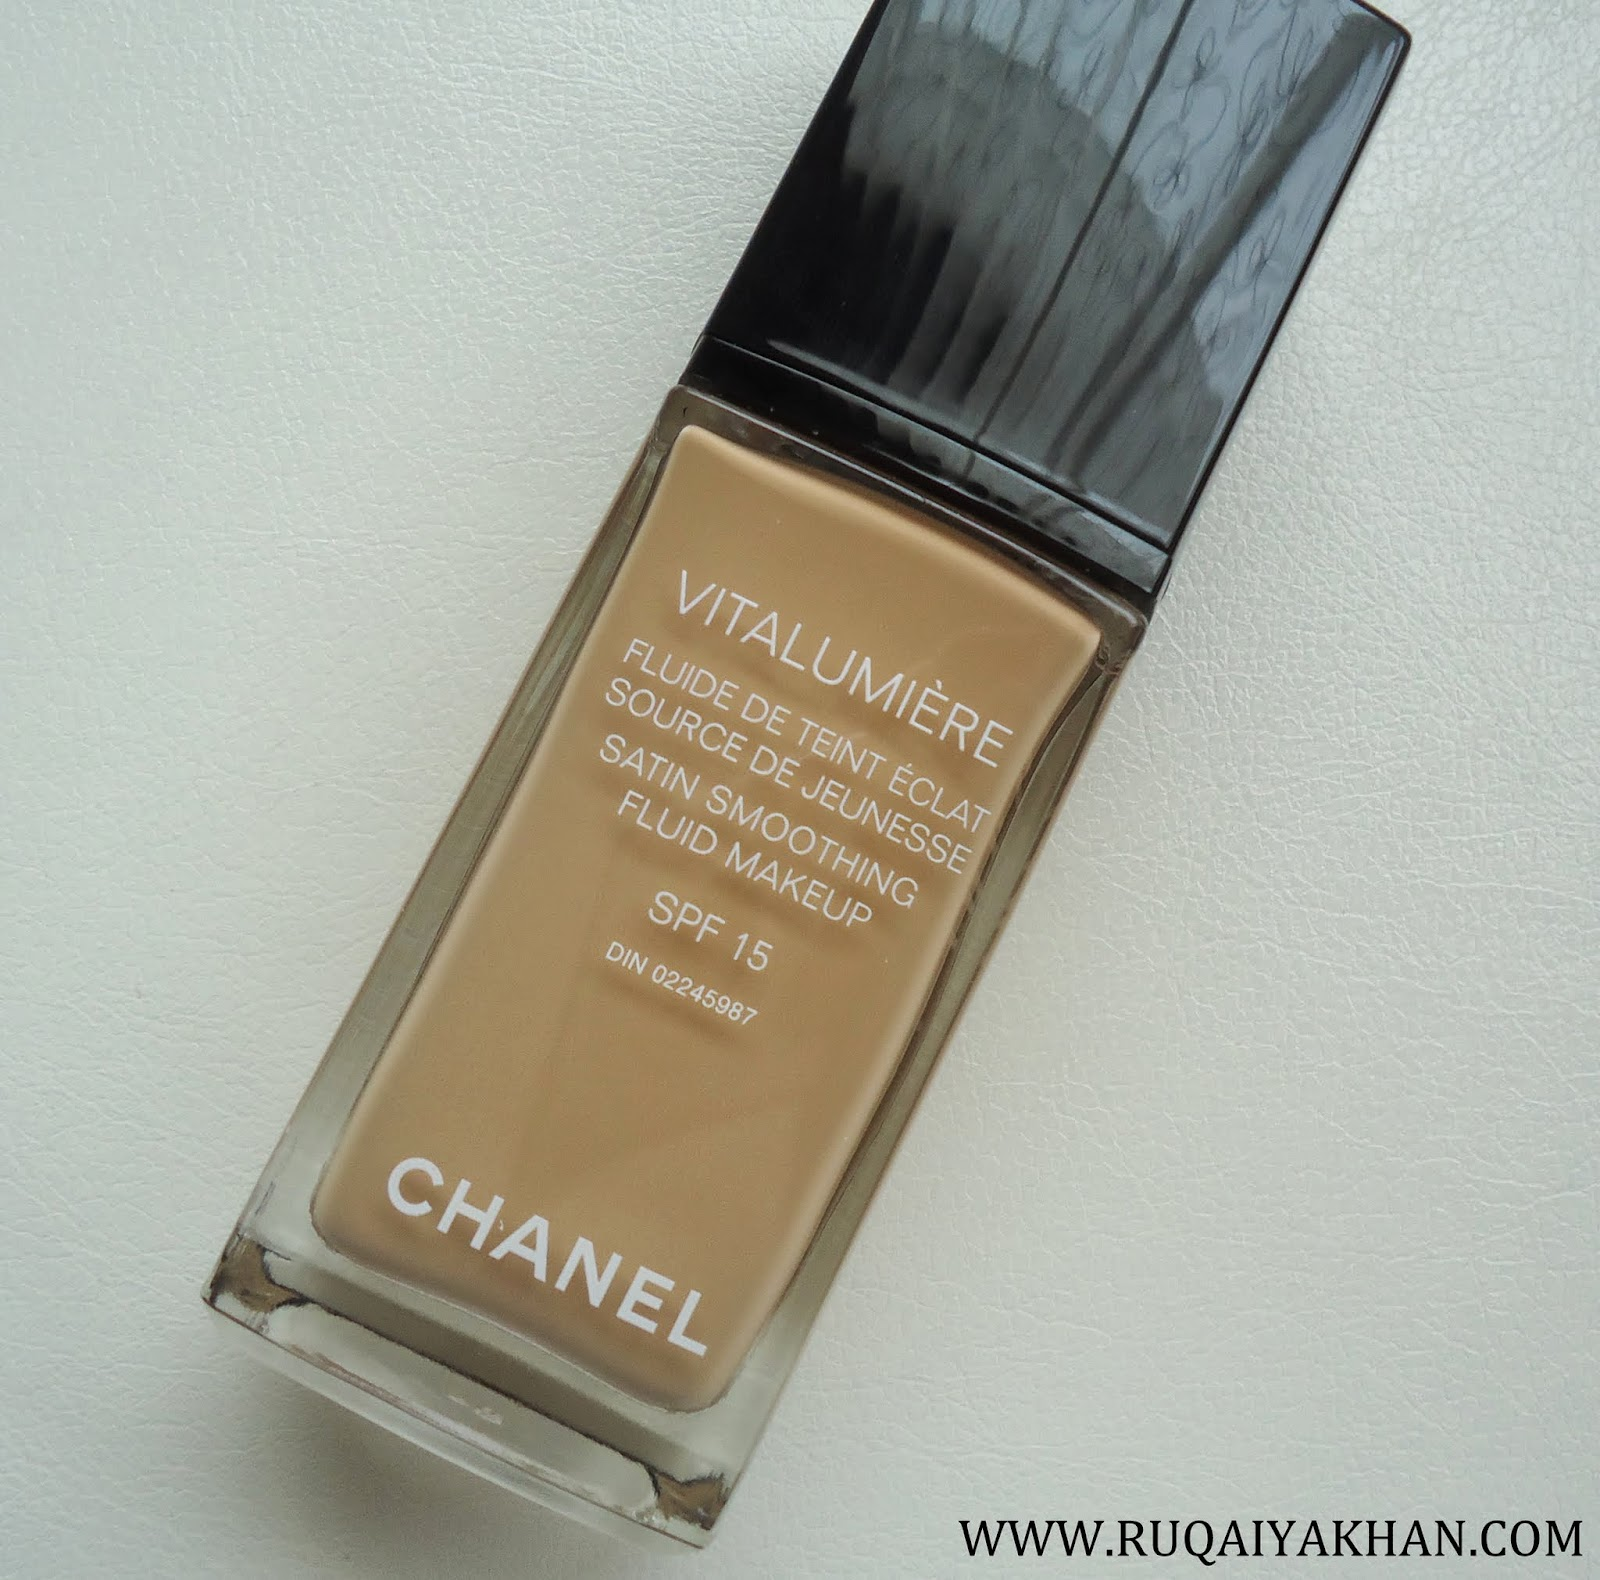 chanel vitalumiere satin smoothing fluid makeup review